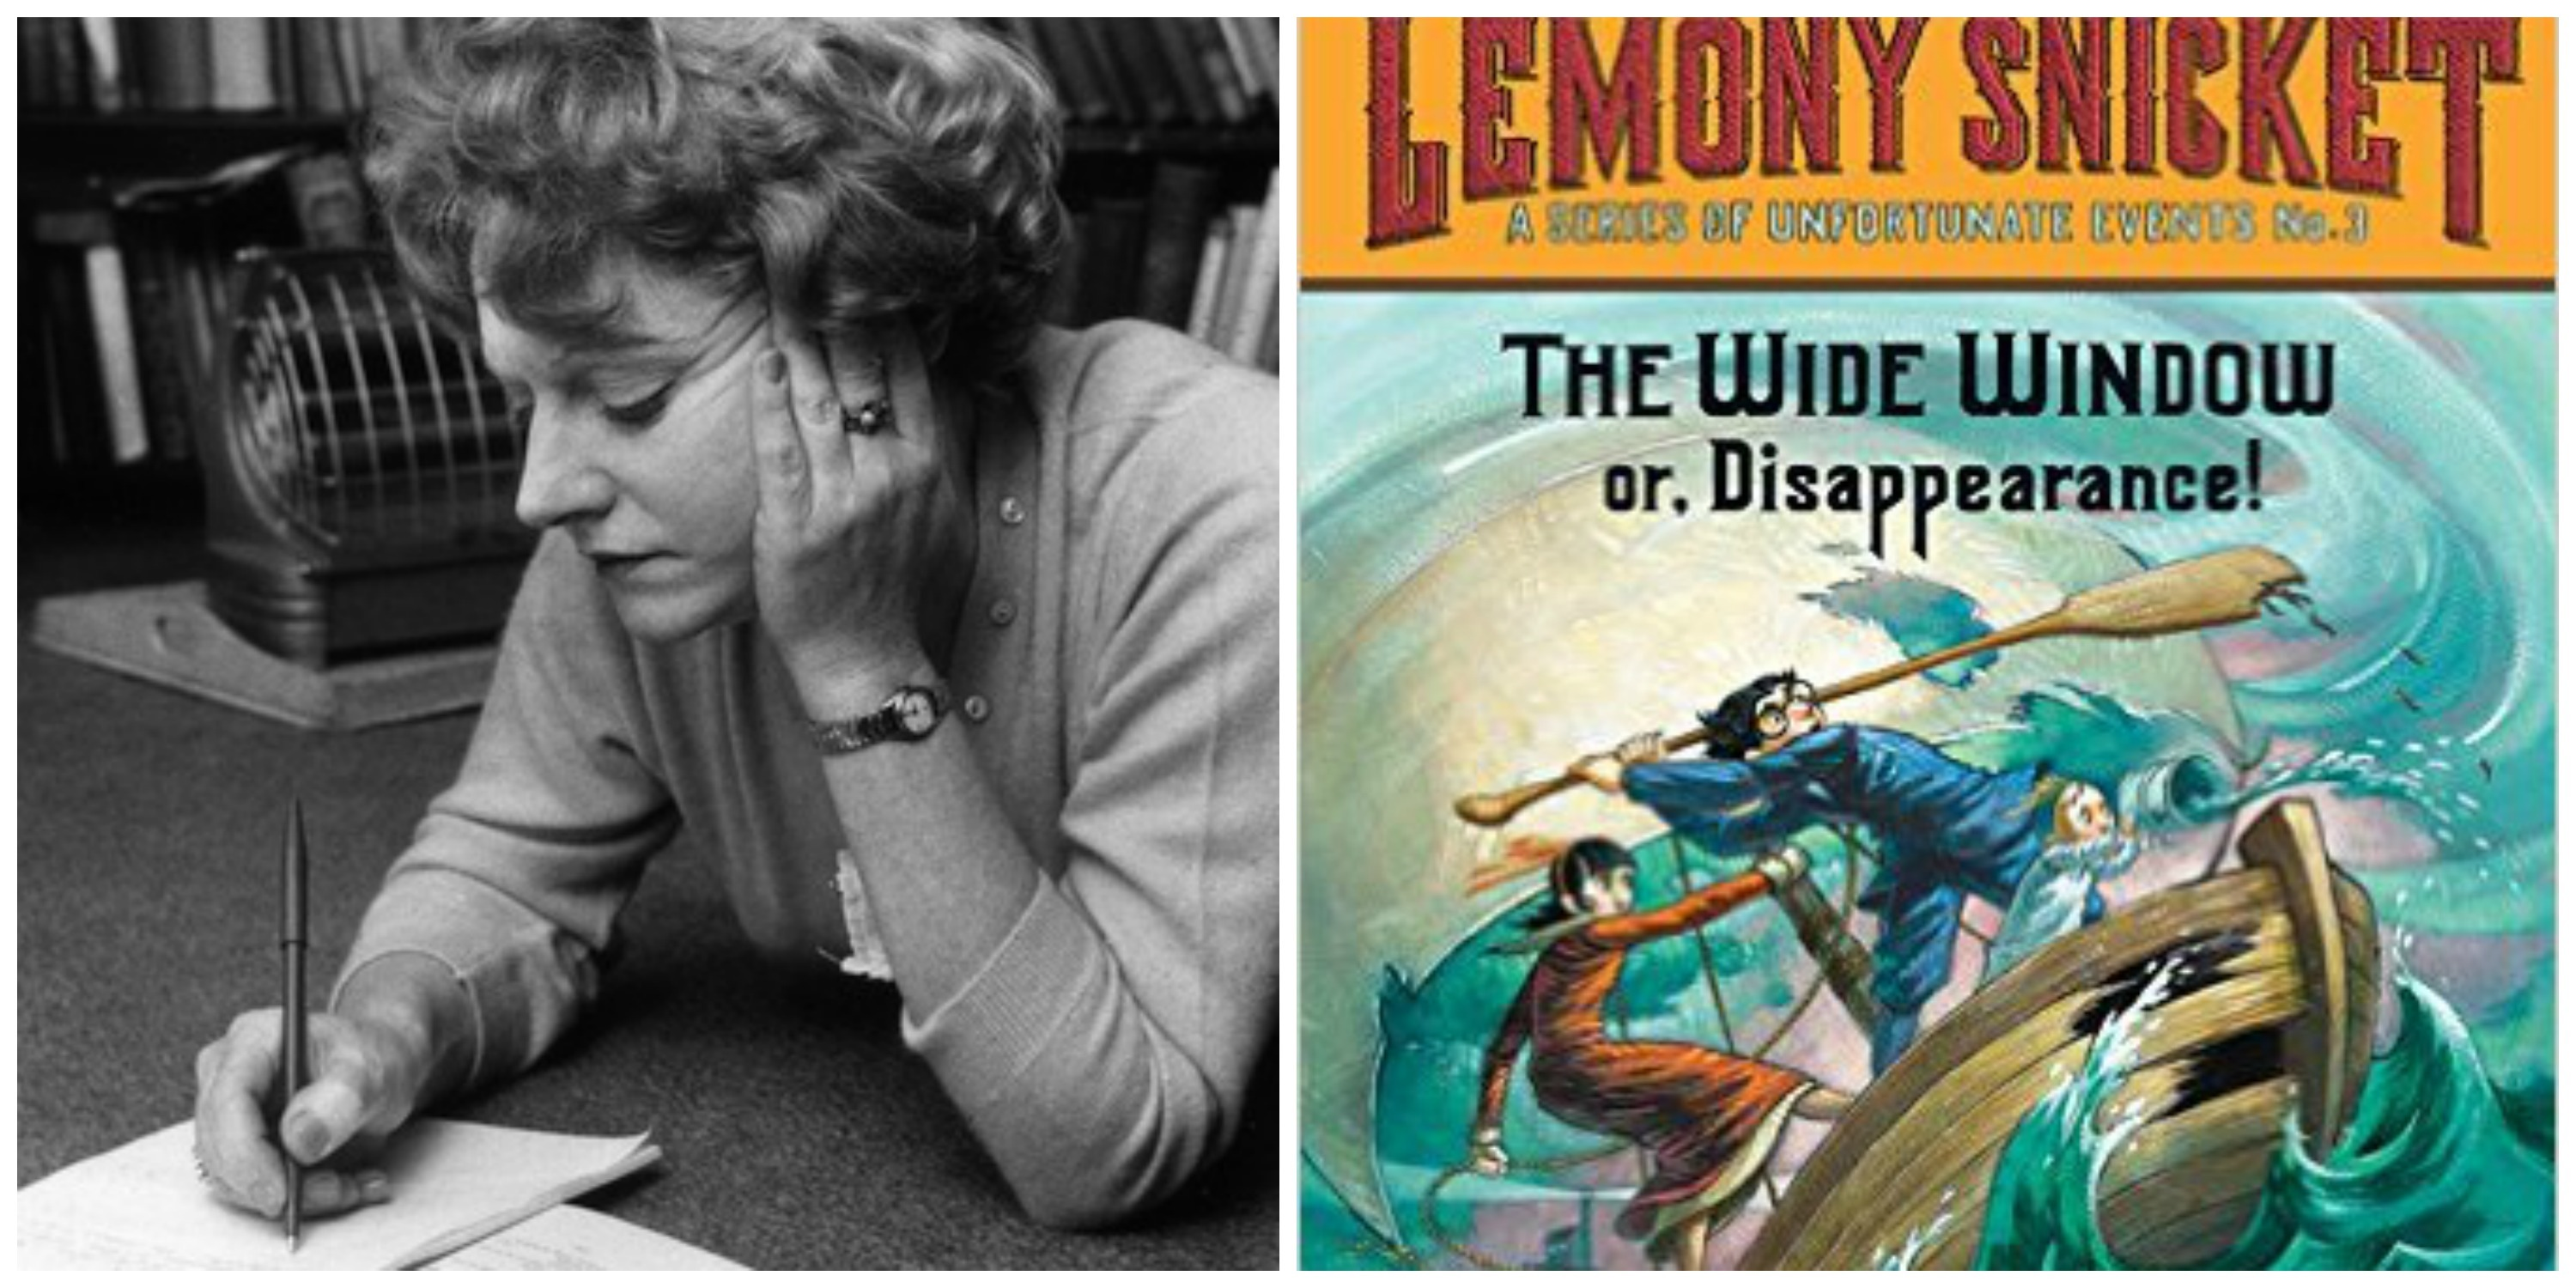 LEFT: Dame Muriel Spark. RIGHT: Paperback cover of 'The Wide Window' by Lemony Snicket